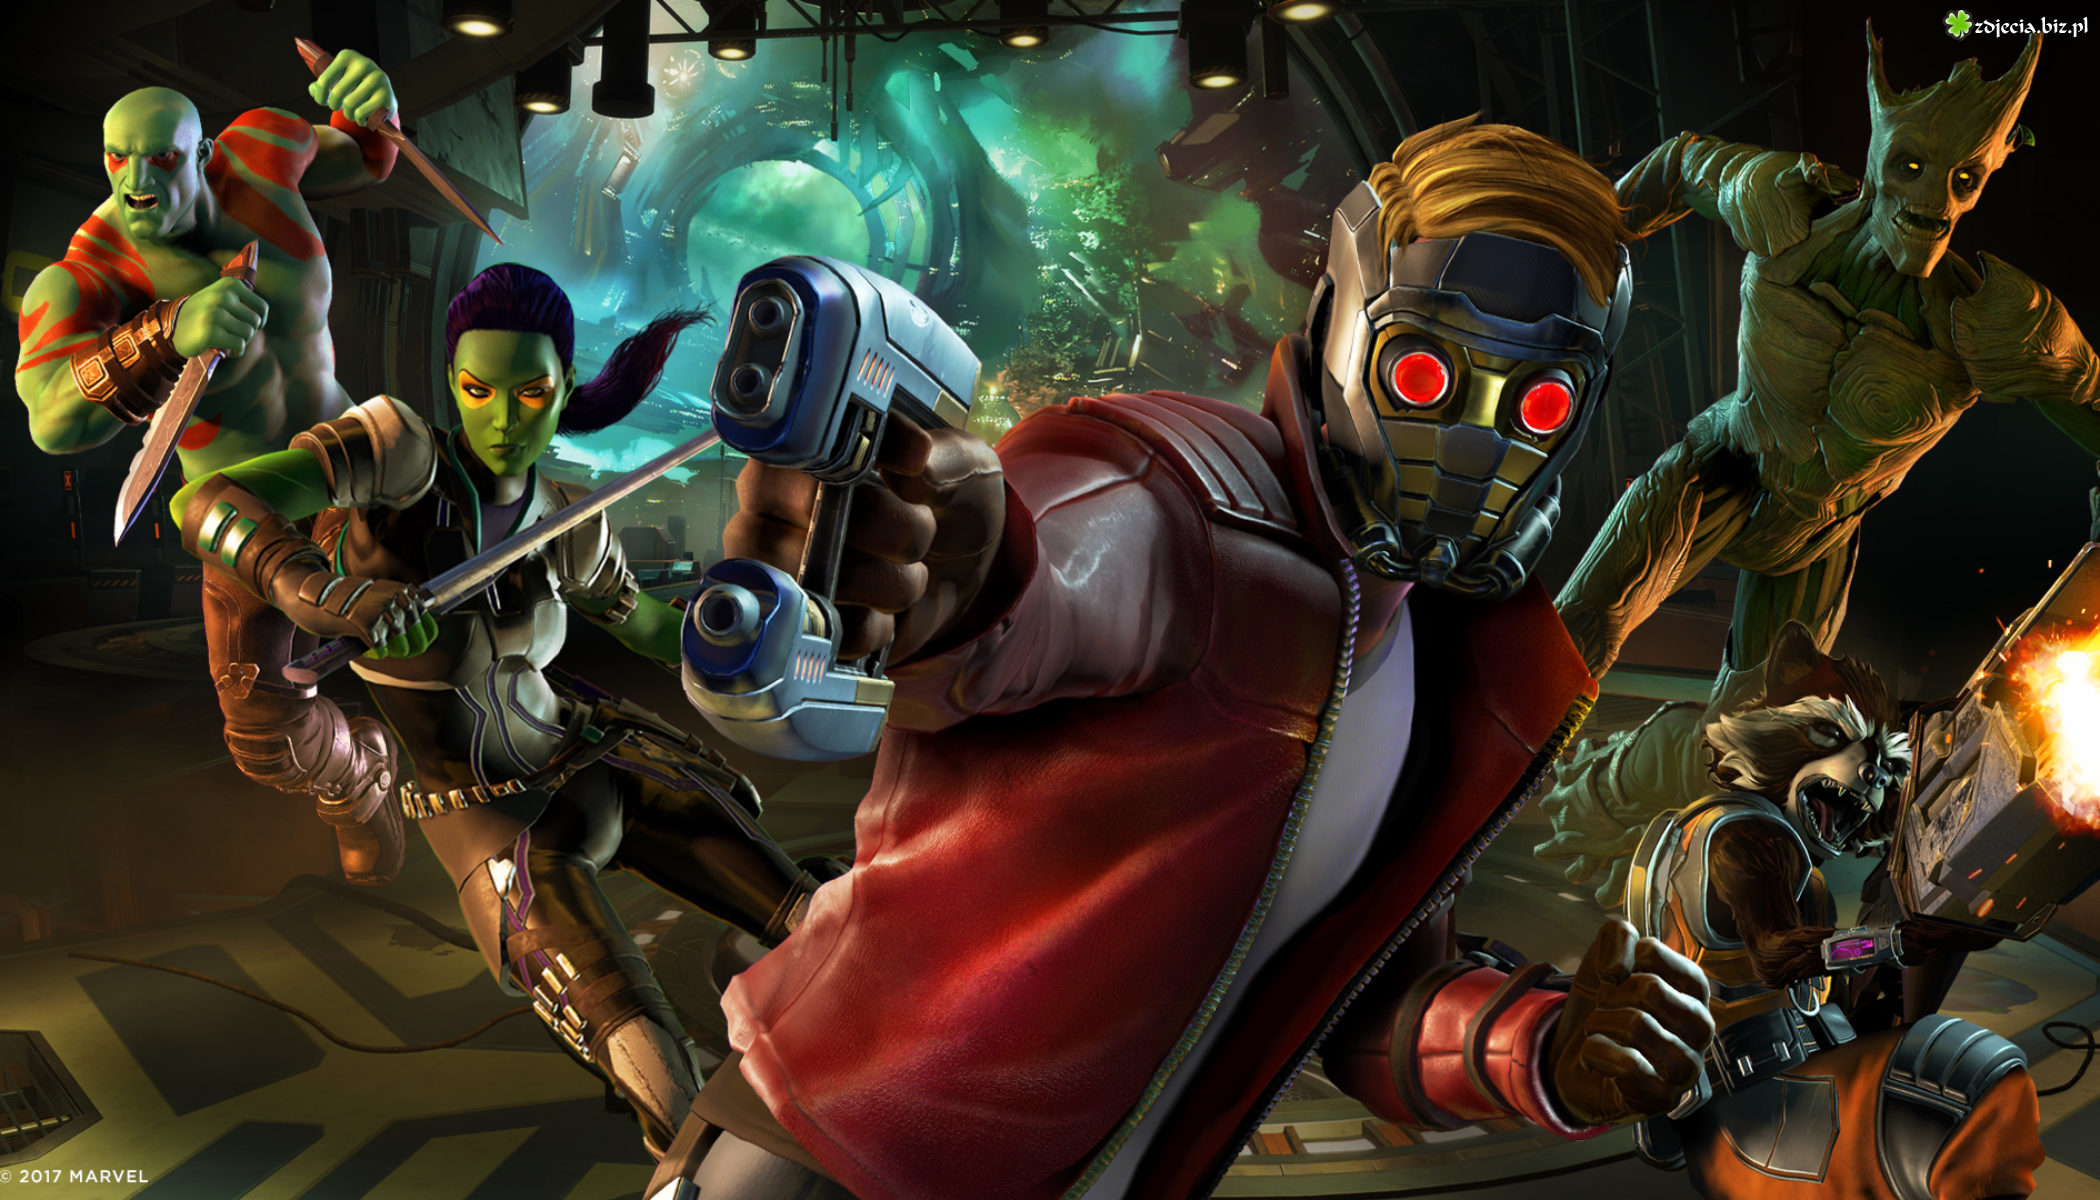 Gra, Guardians of the Galaxy - The Telltale Series, Star-Lord, Strażnicy Galaktyki